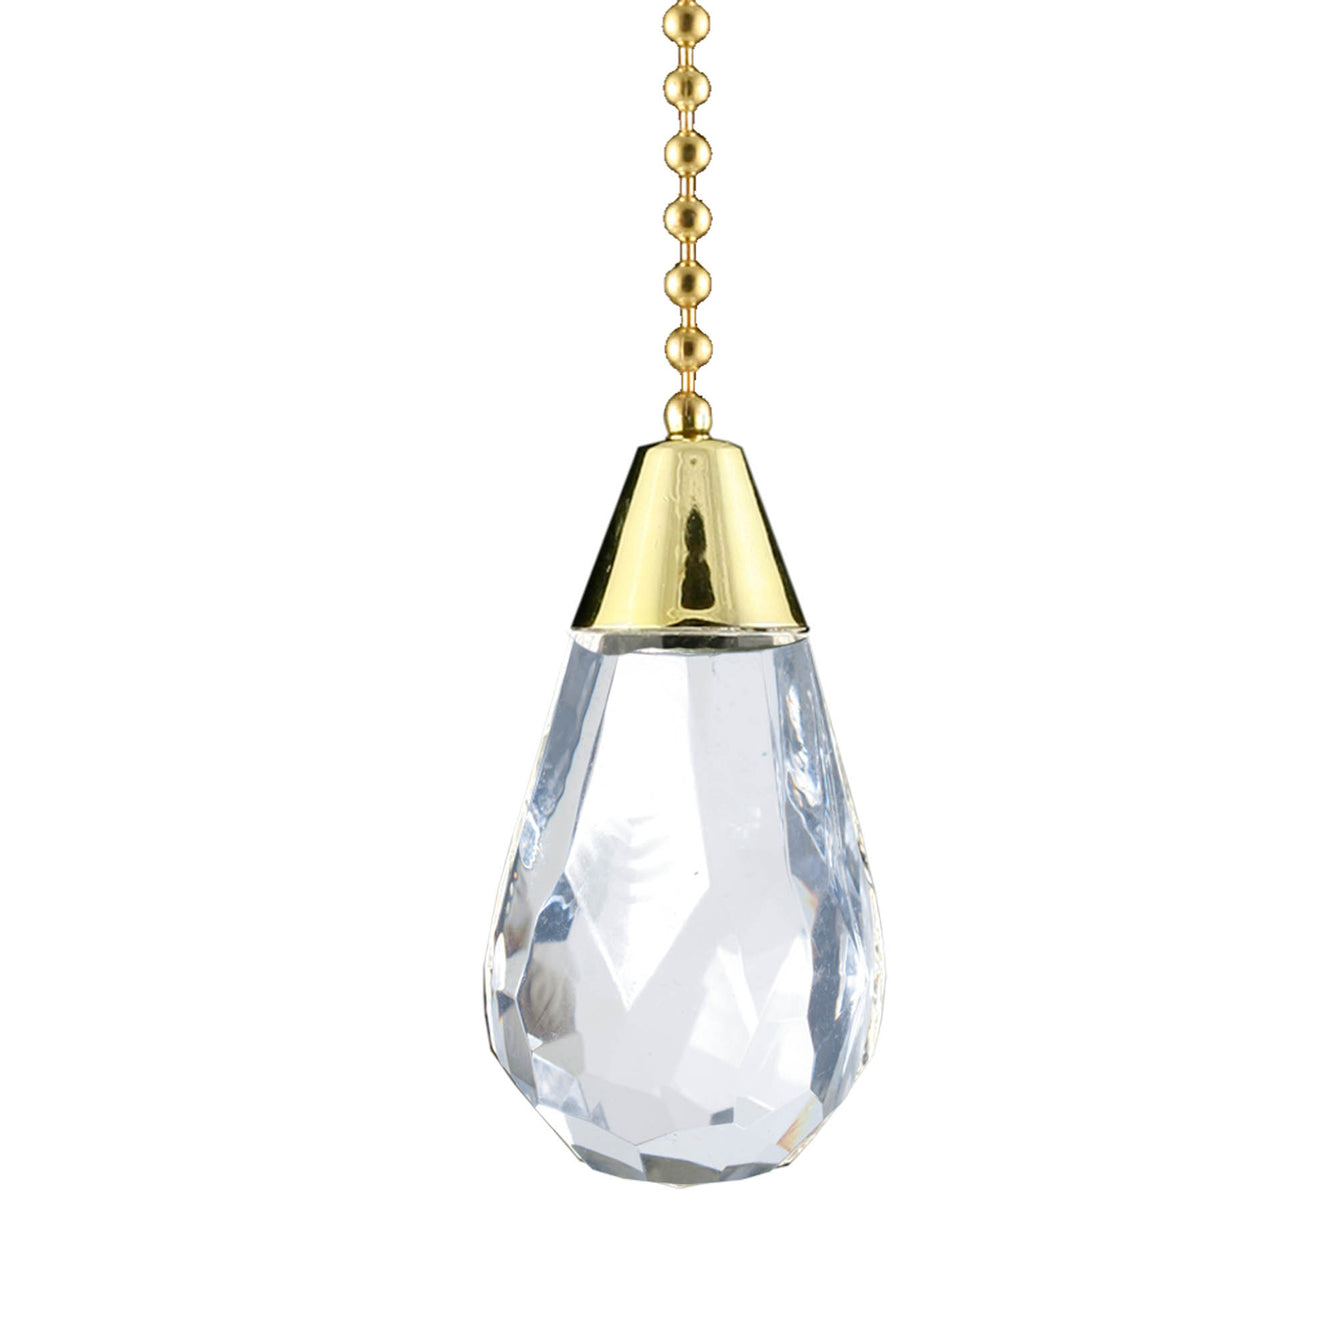 ElekTek Light Pull Chain Acrylic Crystal Facets With 80cm Matching Chain - Buy It Better Cylinder